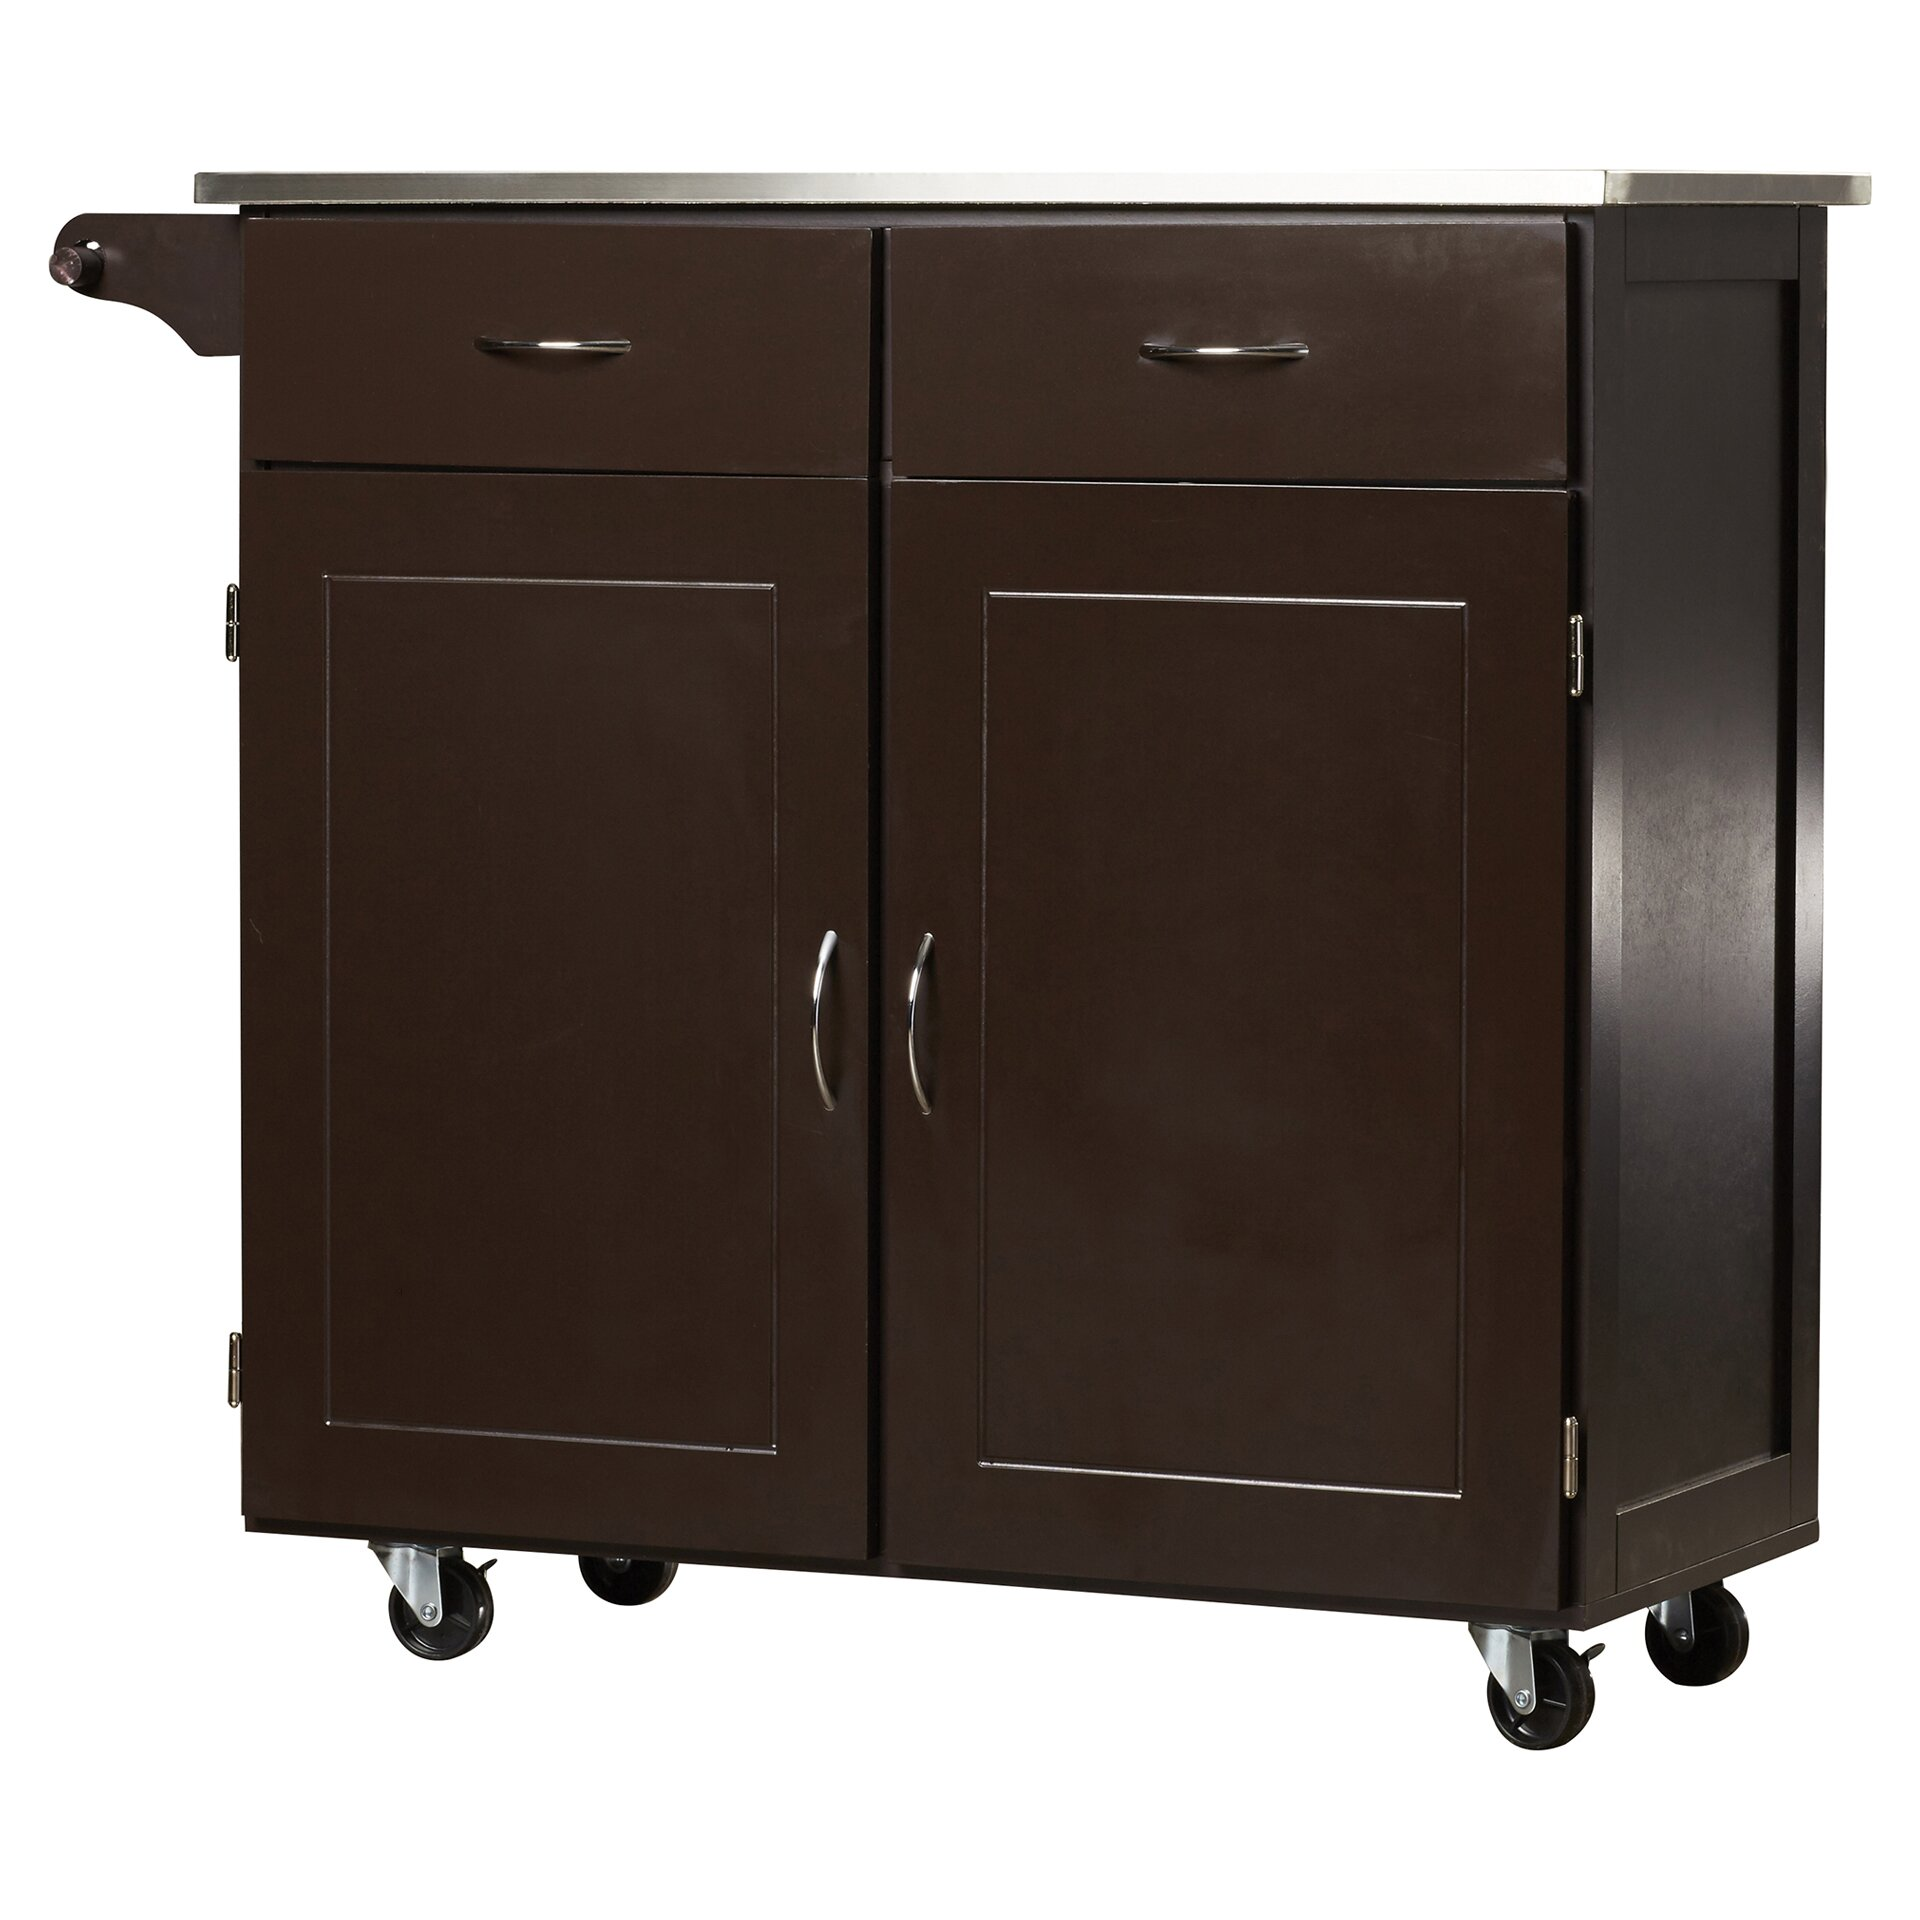 Cocina Kitchen Cart With Stainless Steel Top: Brayden Studio Dayville Large Kitchen Cart With Stainless